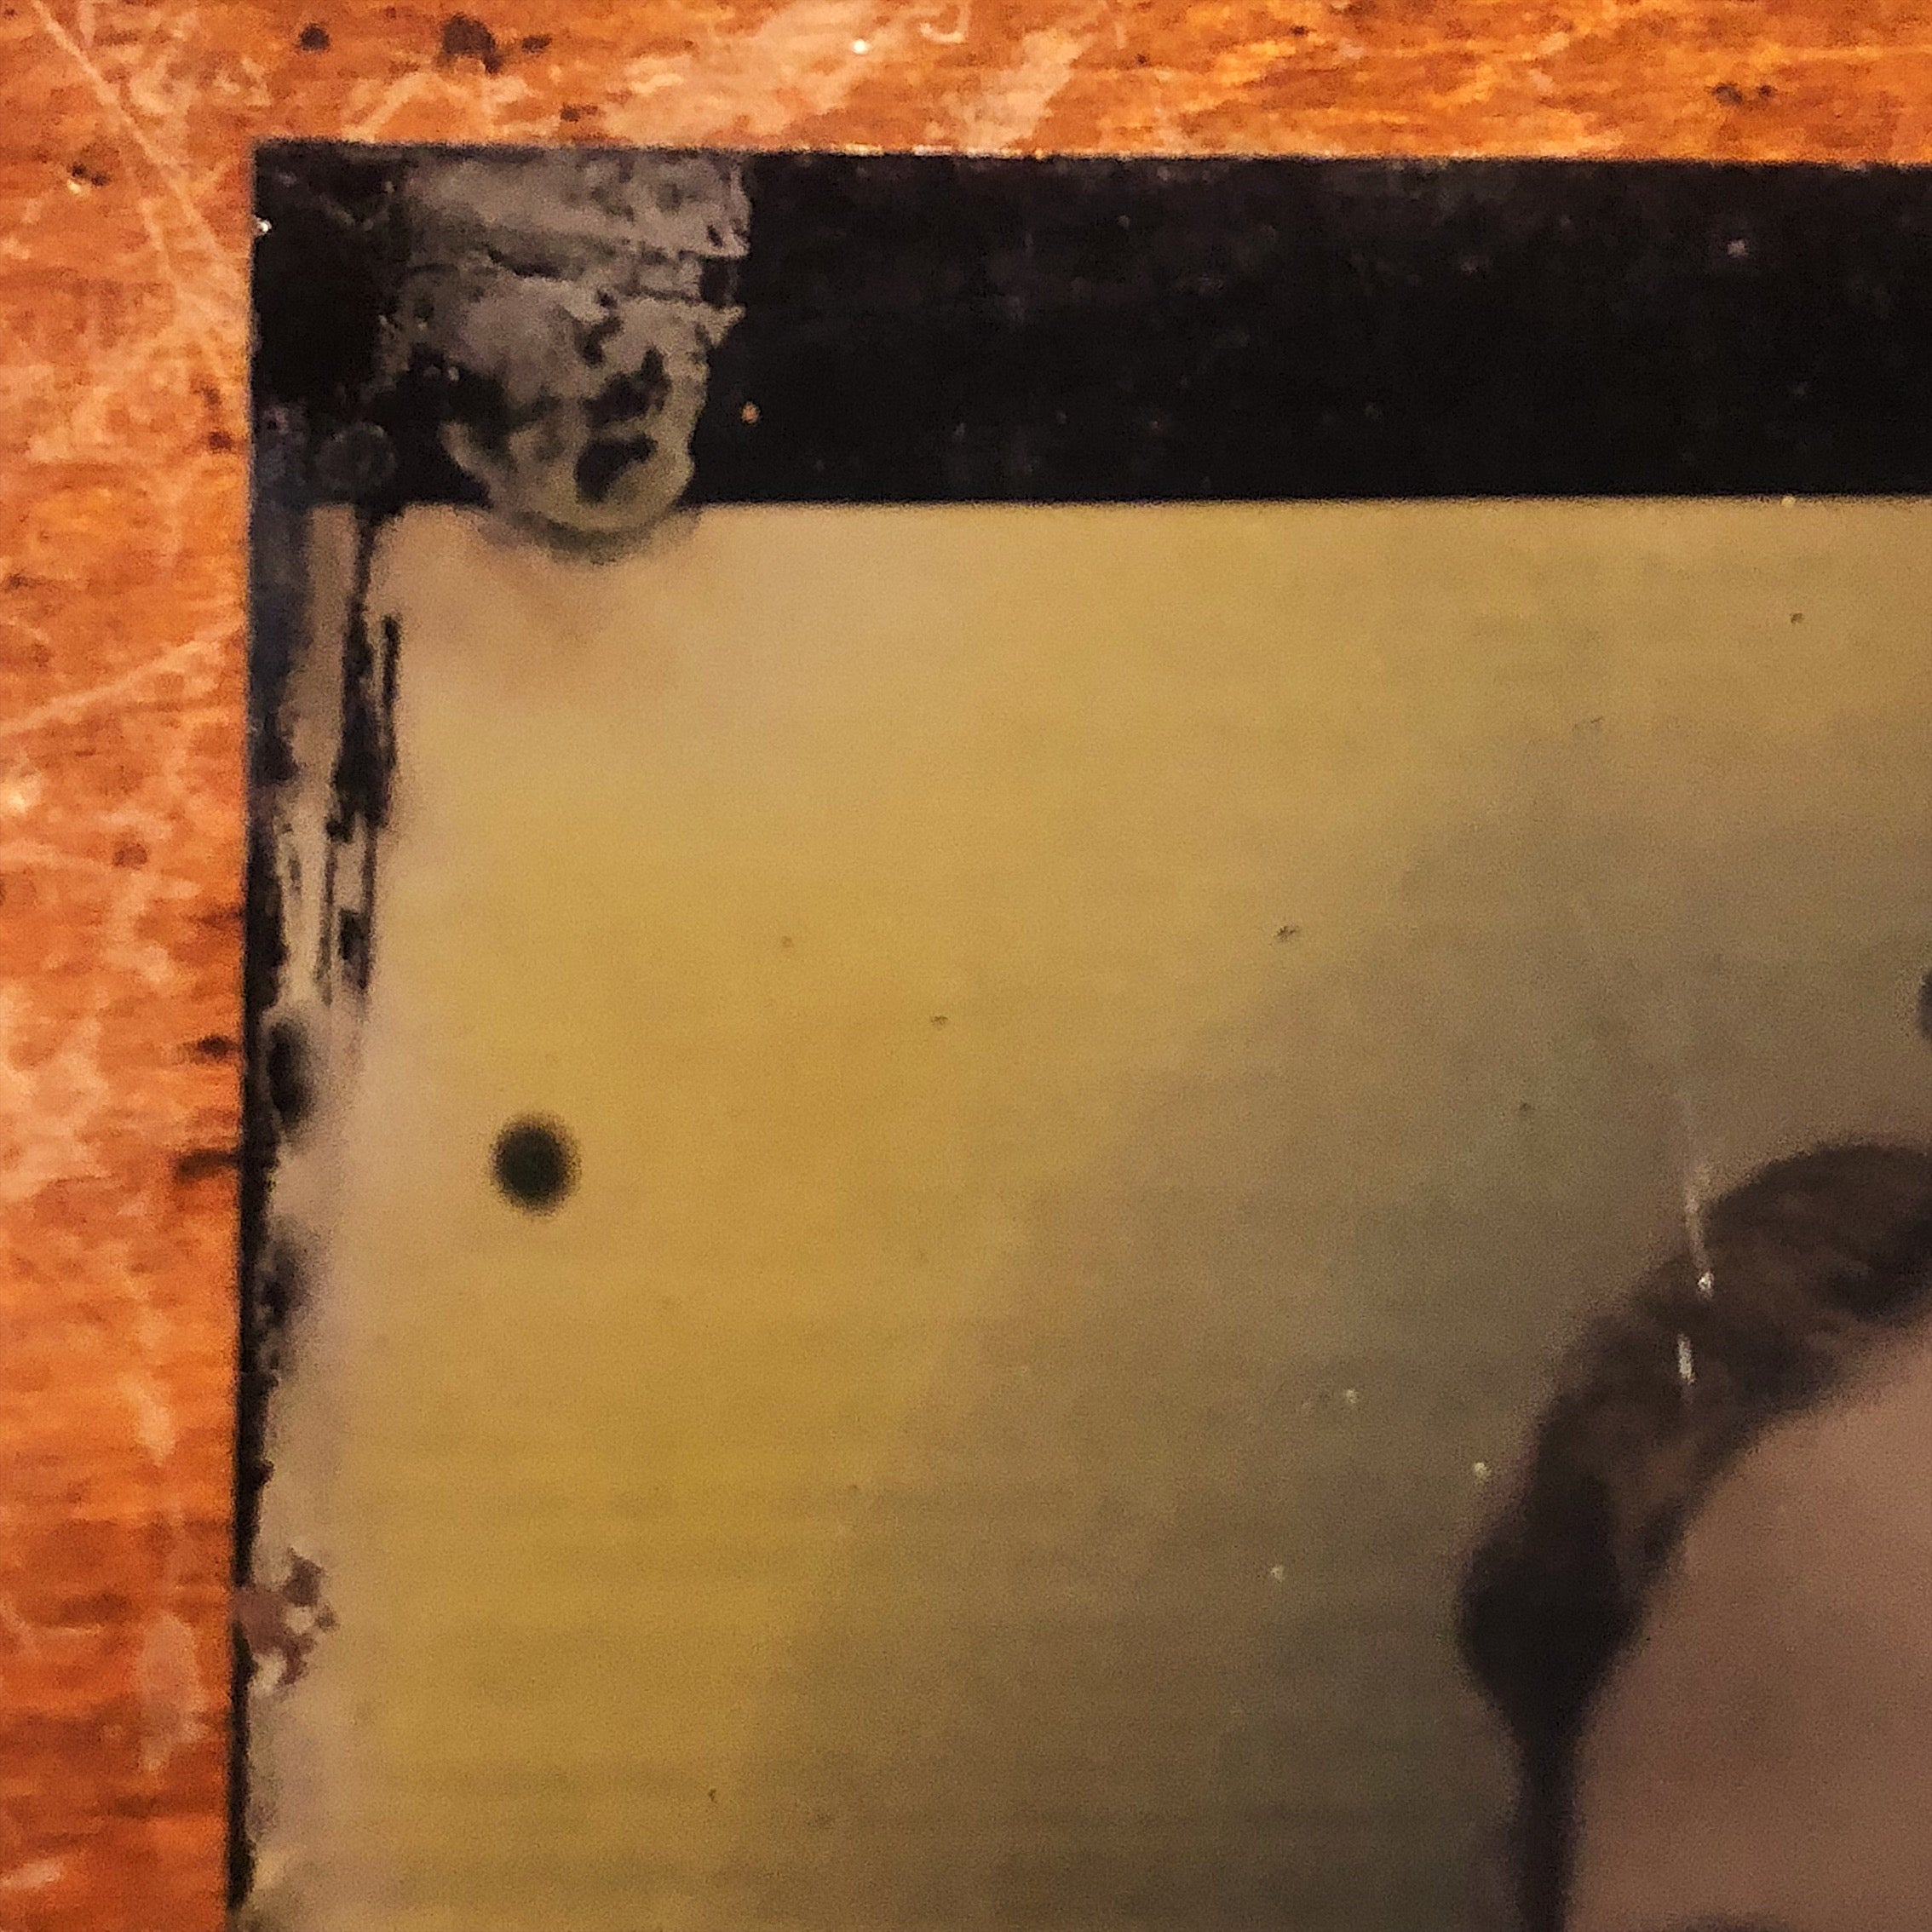 Antique Tintype of Woman with Creepy Hand Painted Eyeballs